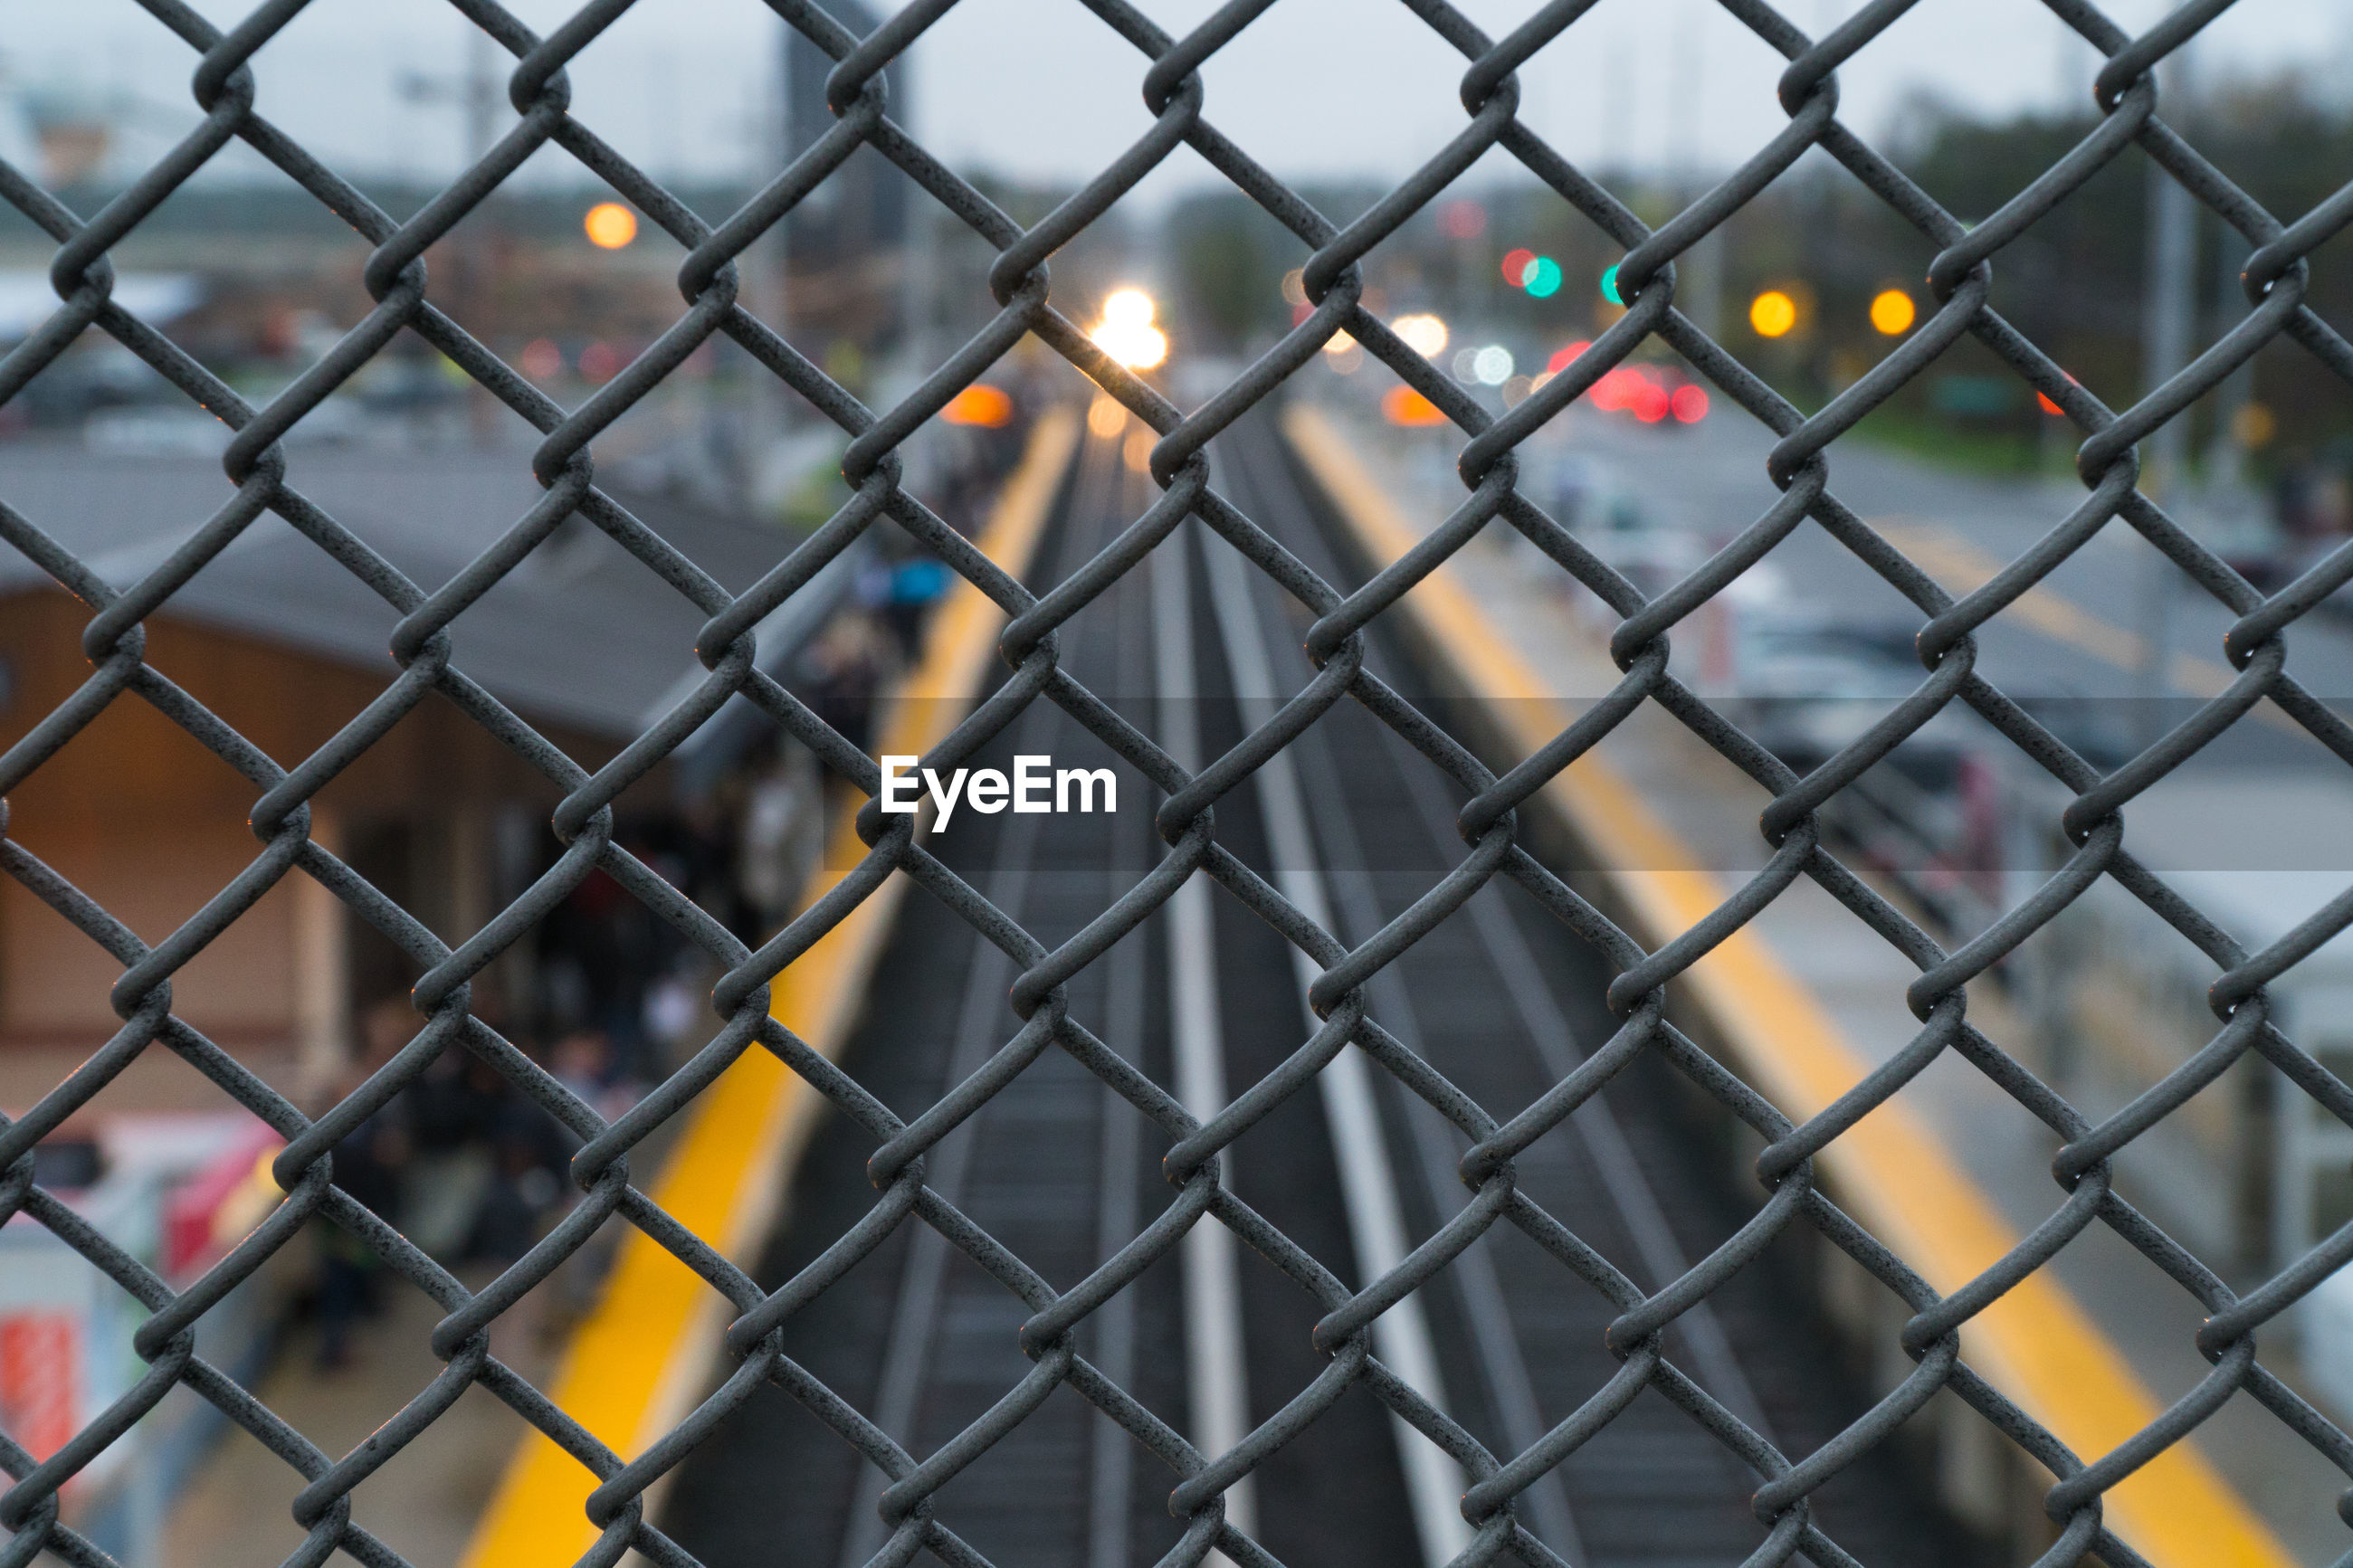 FULL FRAME SHOT OF CHAINLINK FENCE WITH HIGHWAY IN BACKGROUND